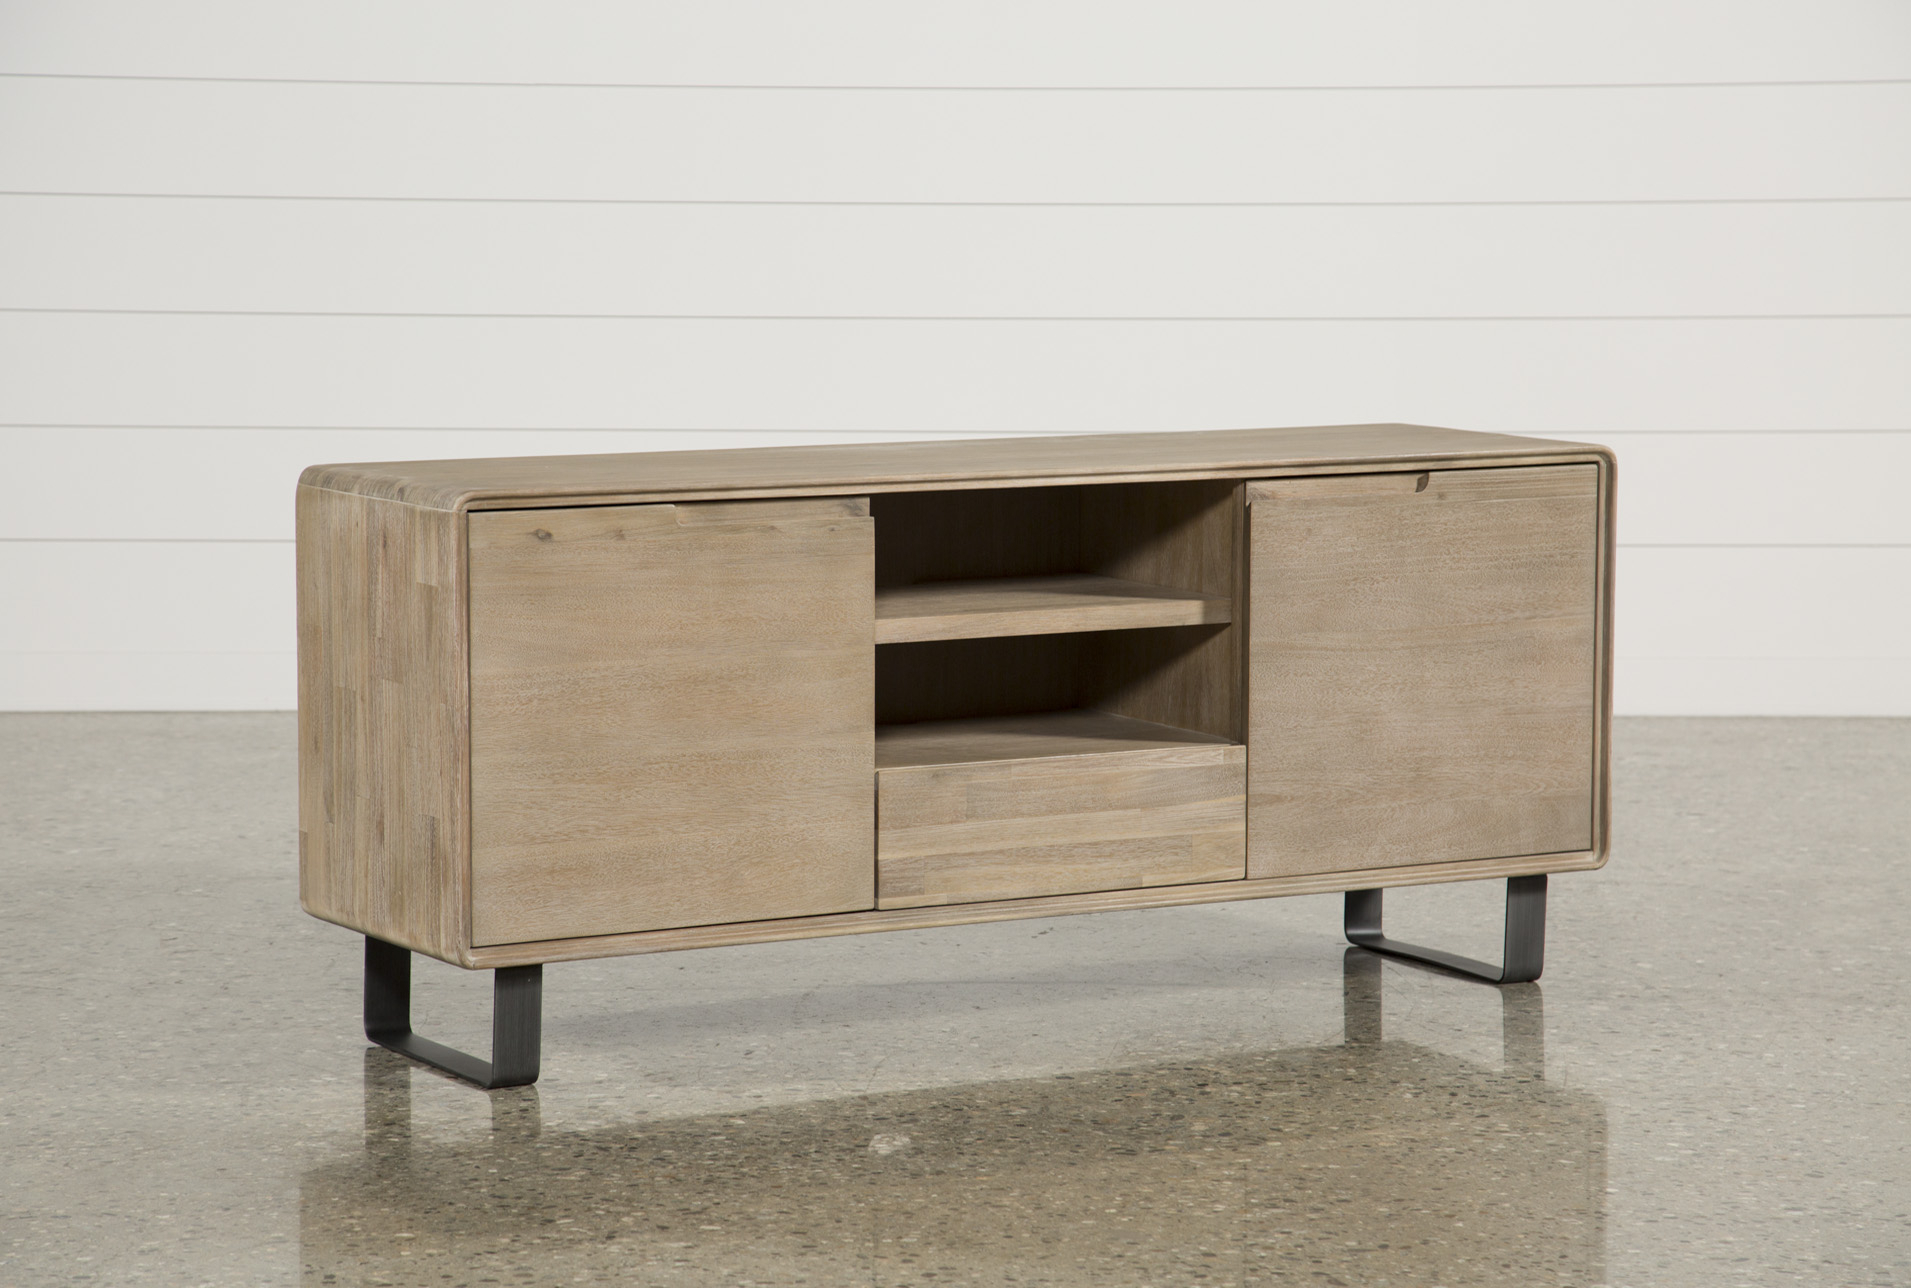 65 Inch Tv Stands Brown | Www.tollebild regarding Melrose Barnhouse Brown 65 Inch Lowboy Tv Stands (Image 12 of 30)